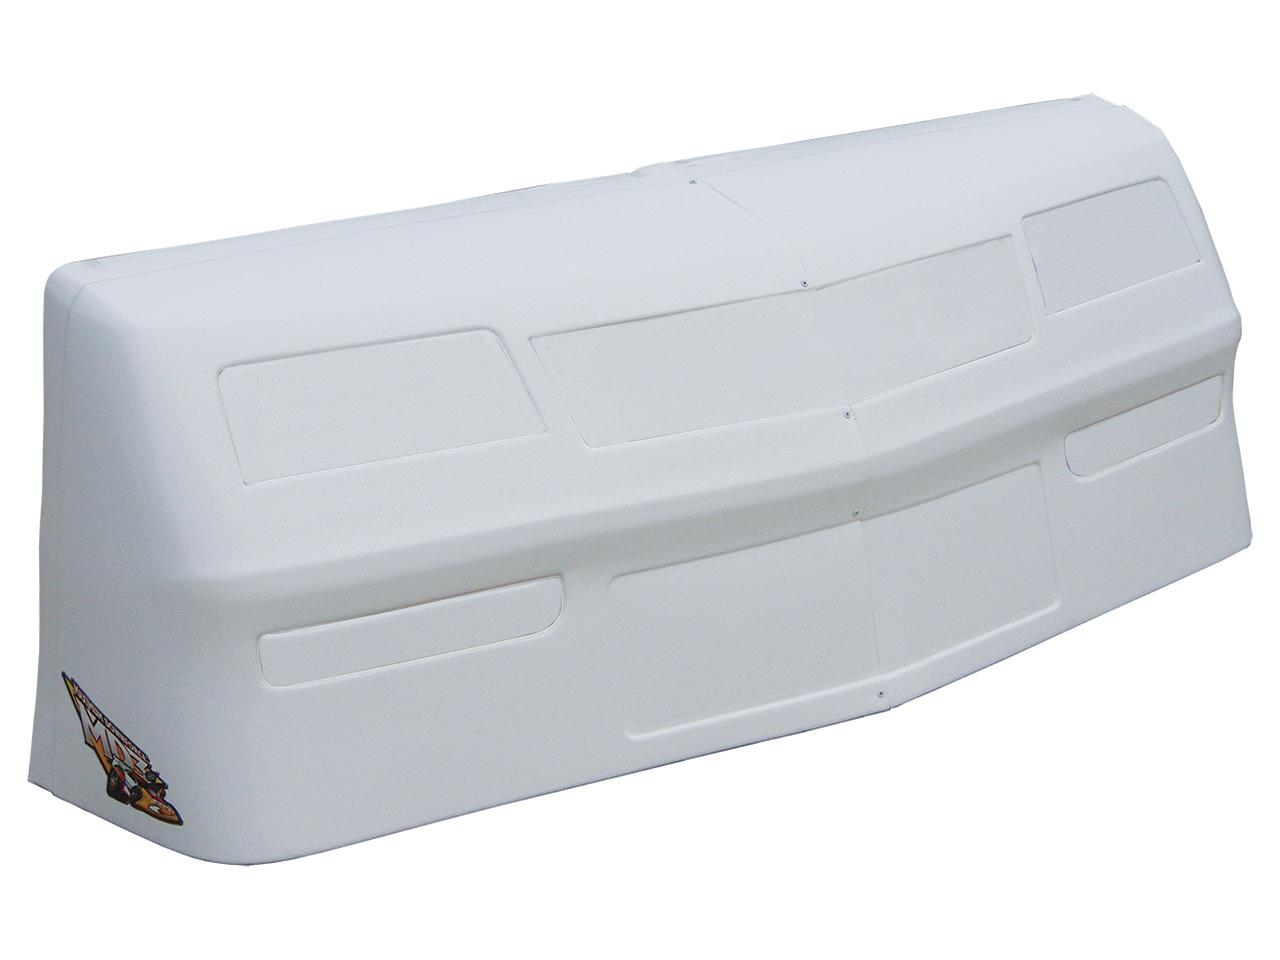 MD3 88 Monte Carlo Nose ONLY - (White)